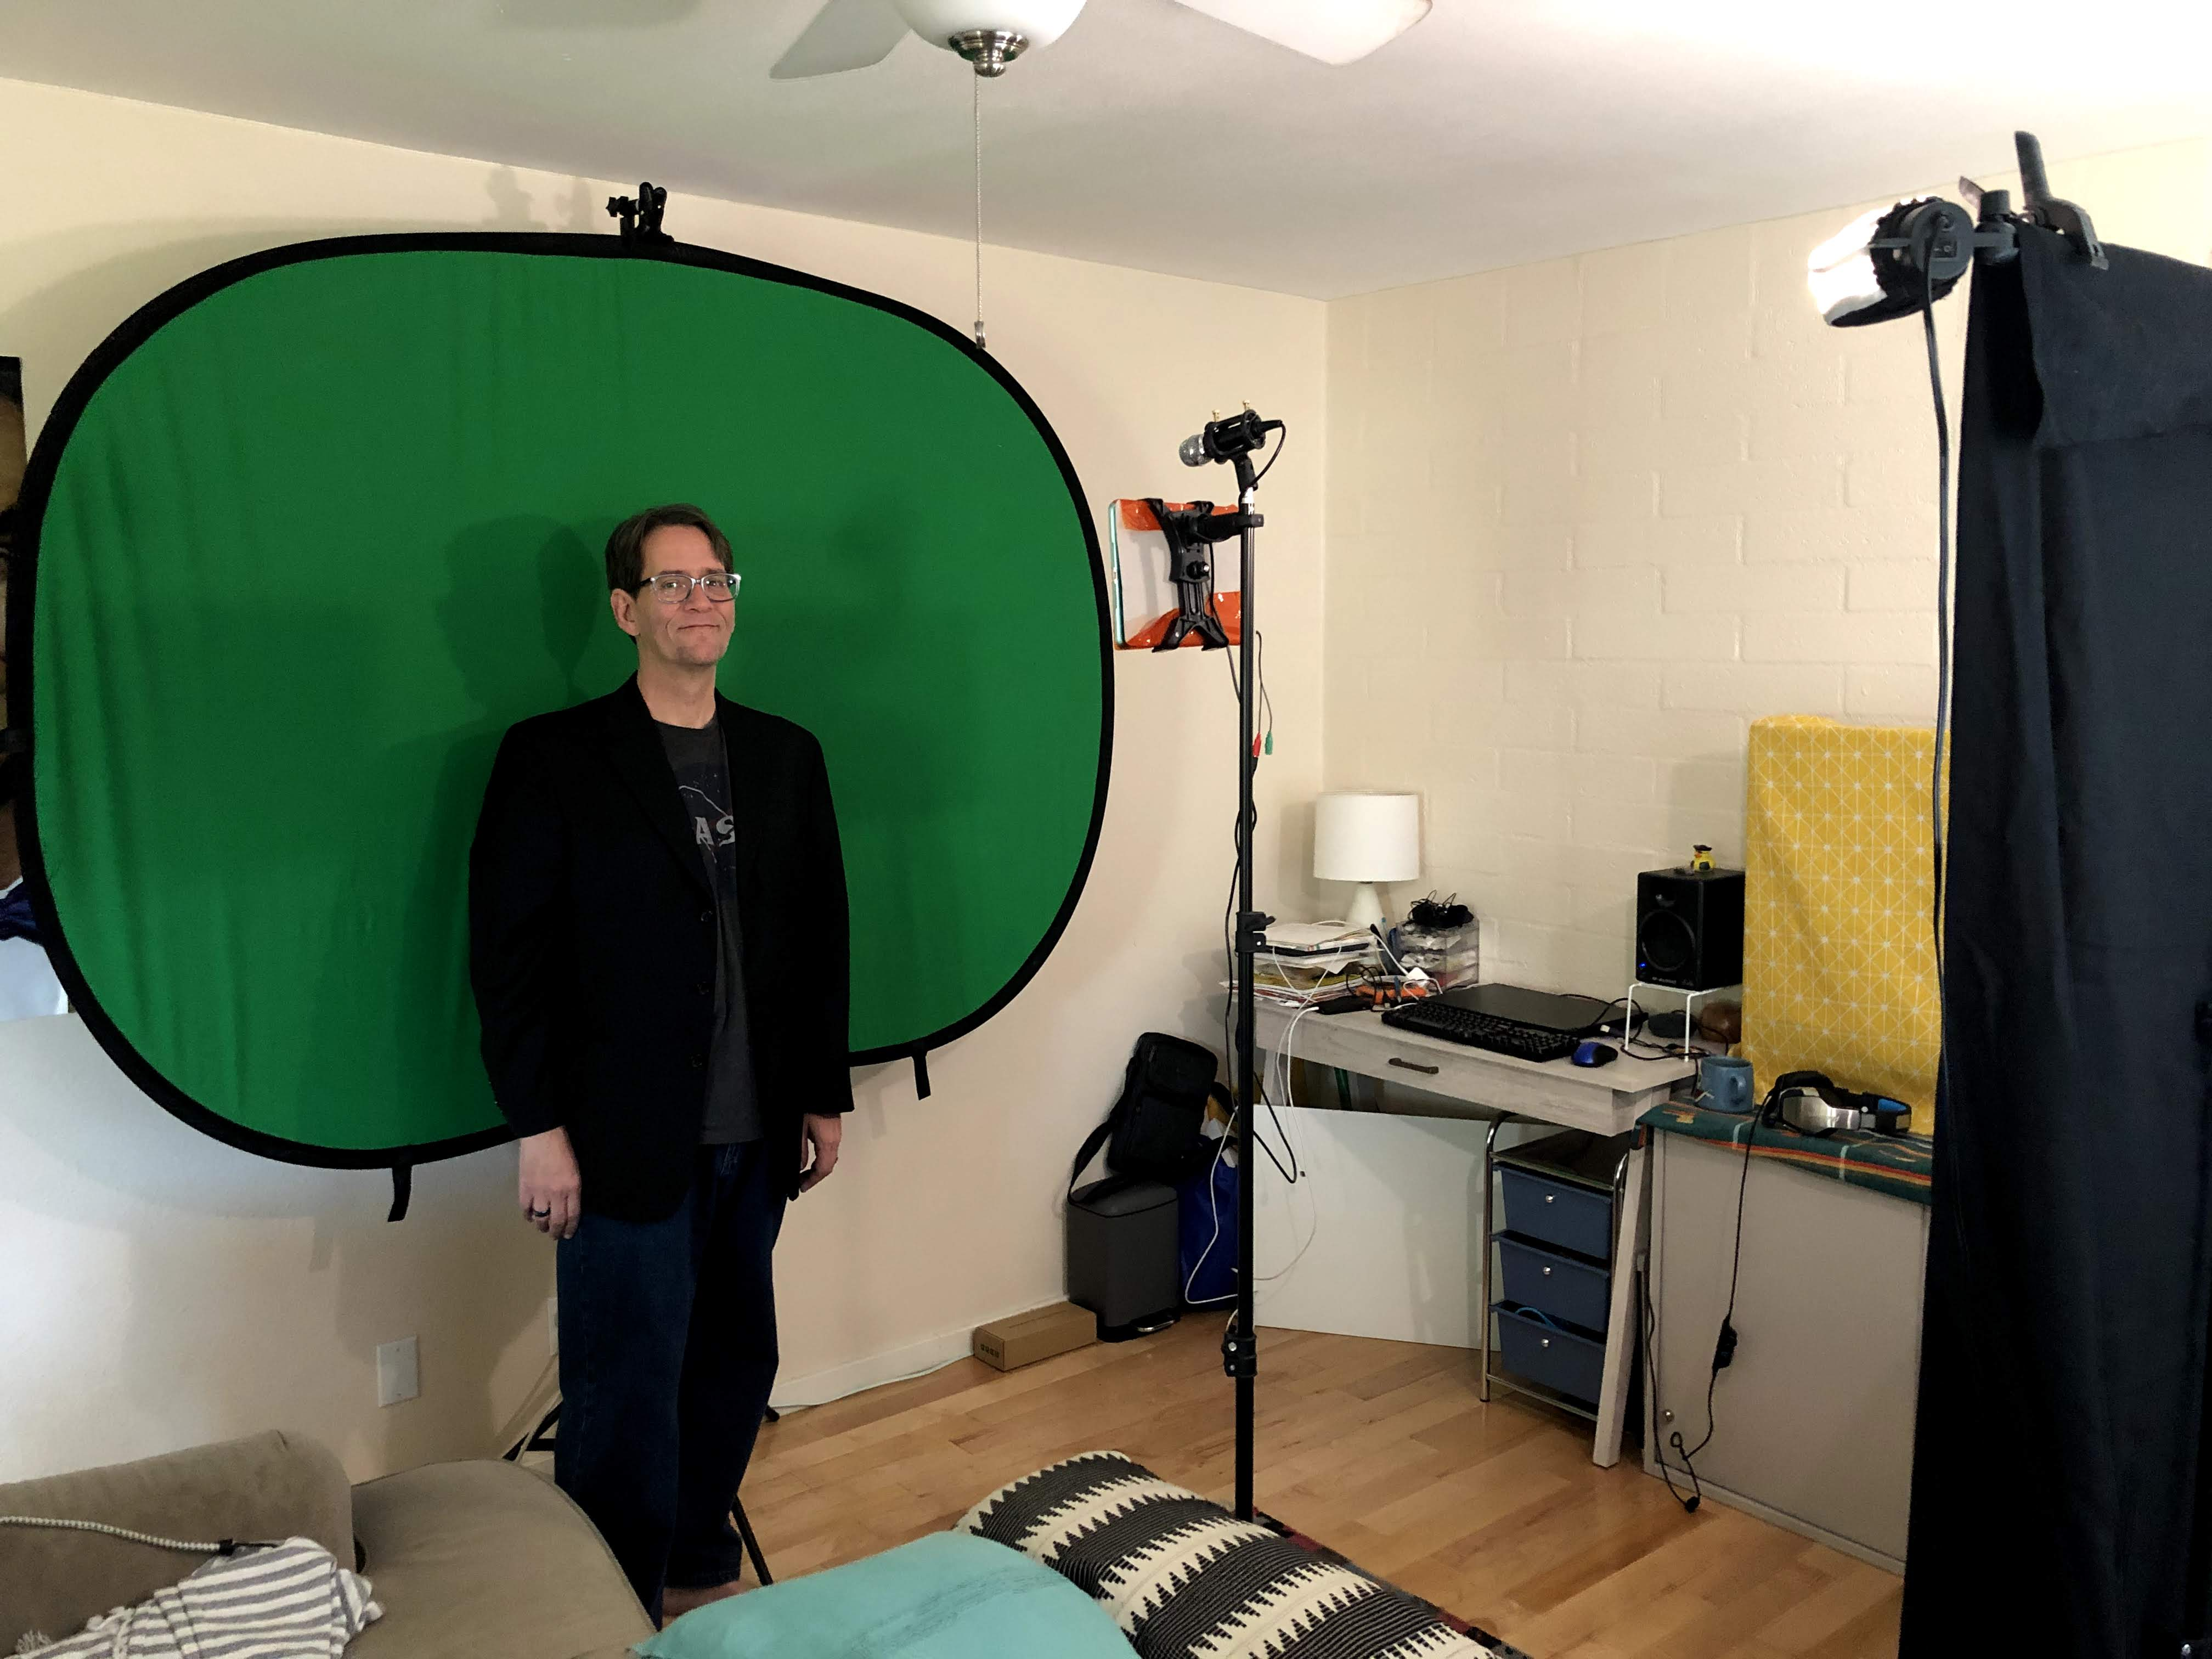 James standing in front of portable green screen.